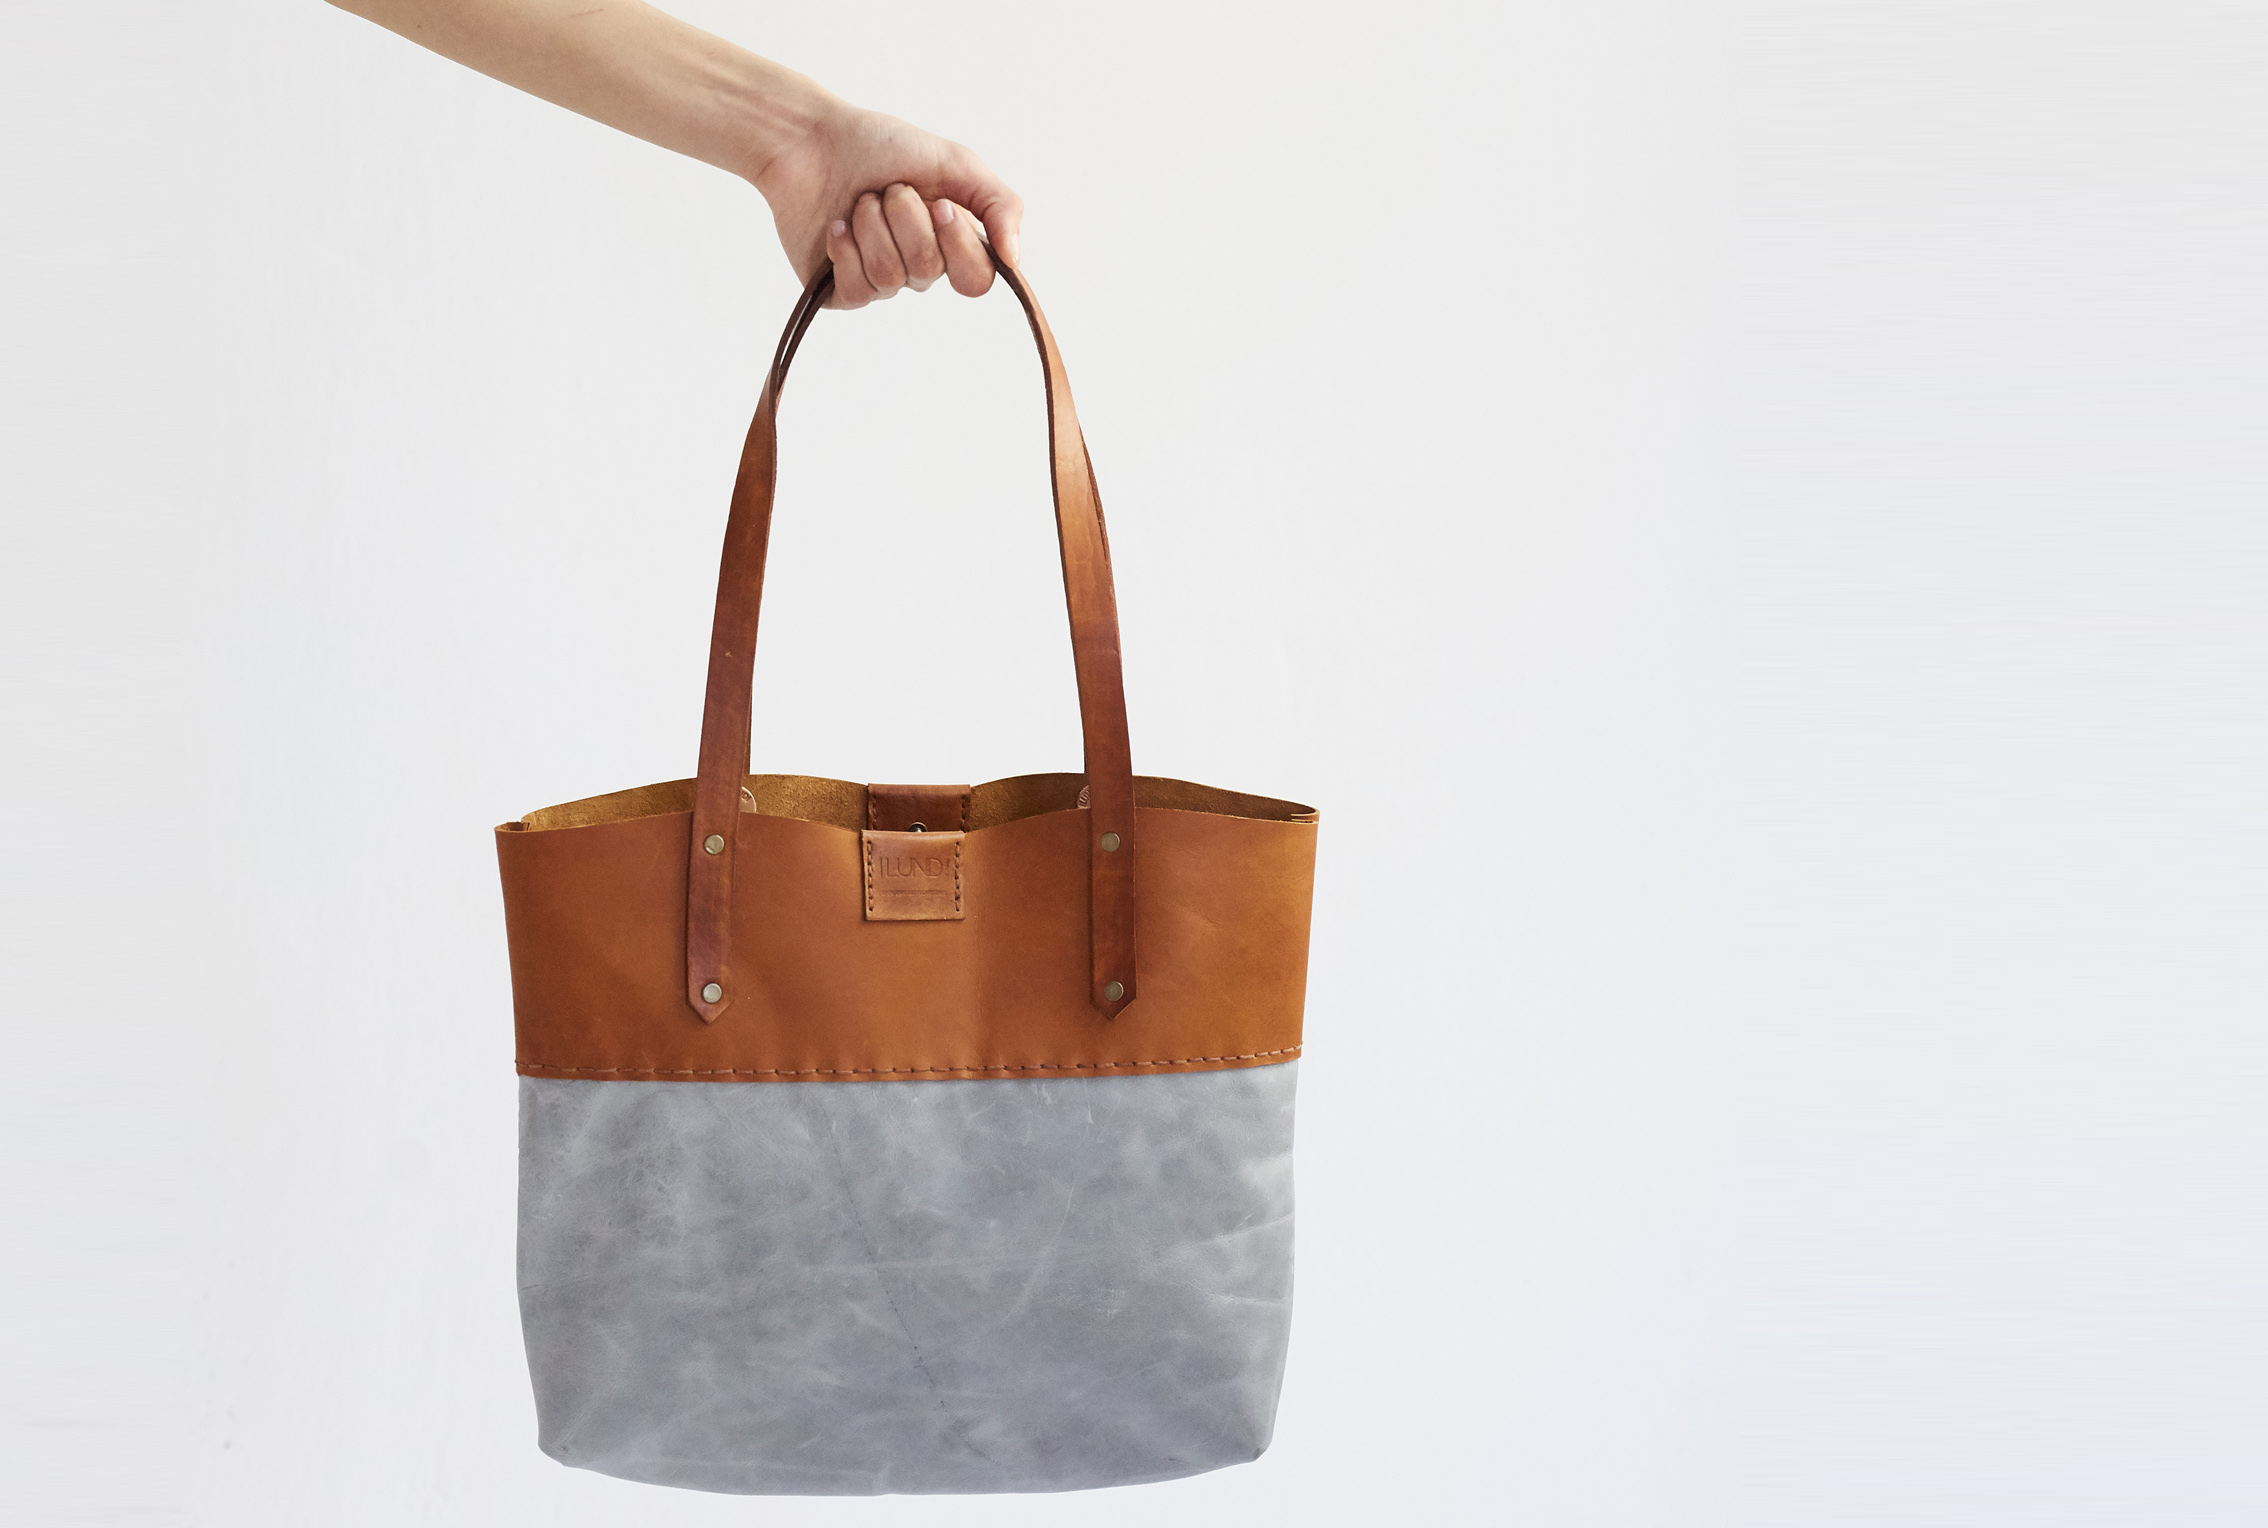 Soft Tote bag - tan and grey